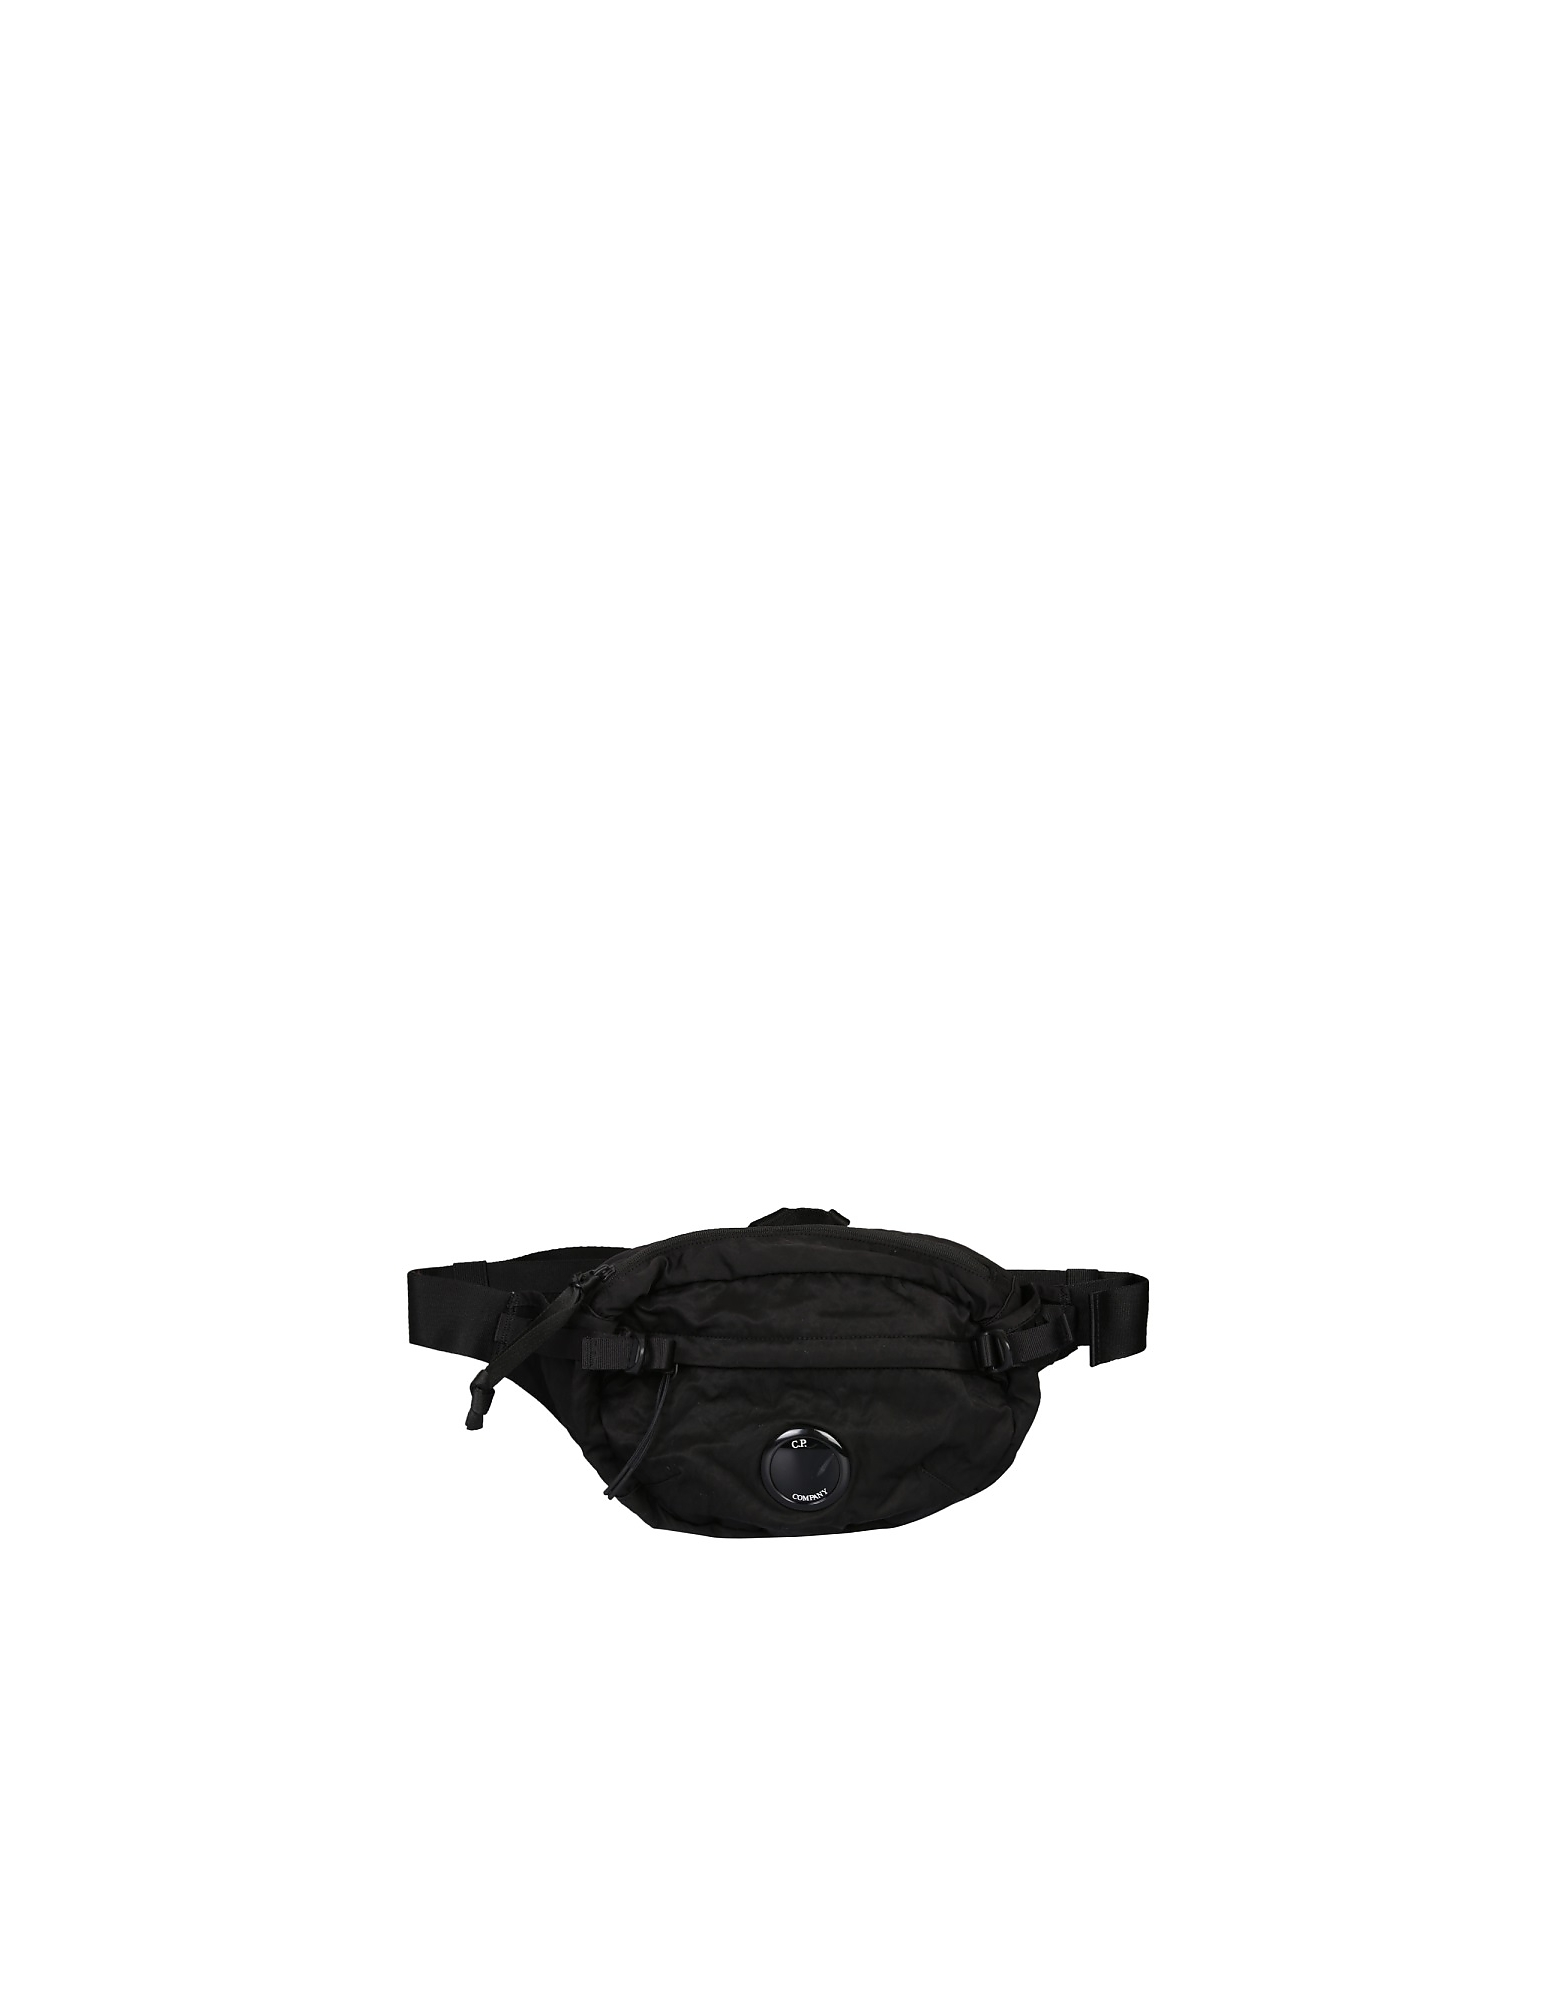 C.p. Company BELT BAG WITH ICONIC LENS